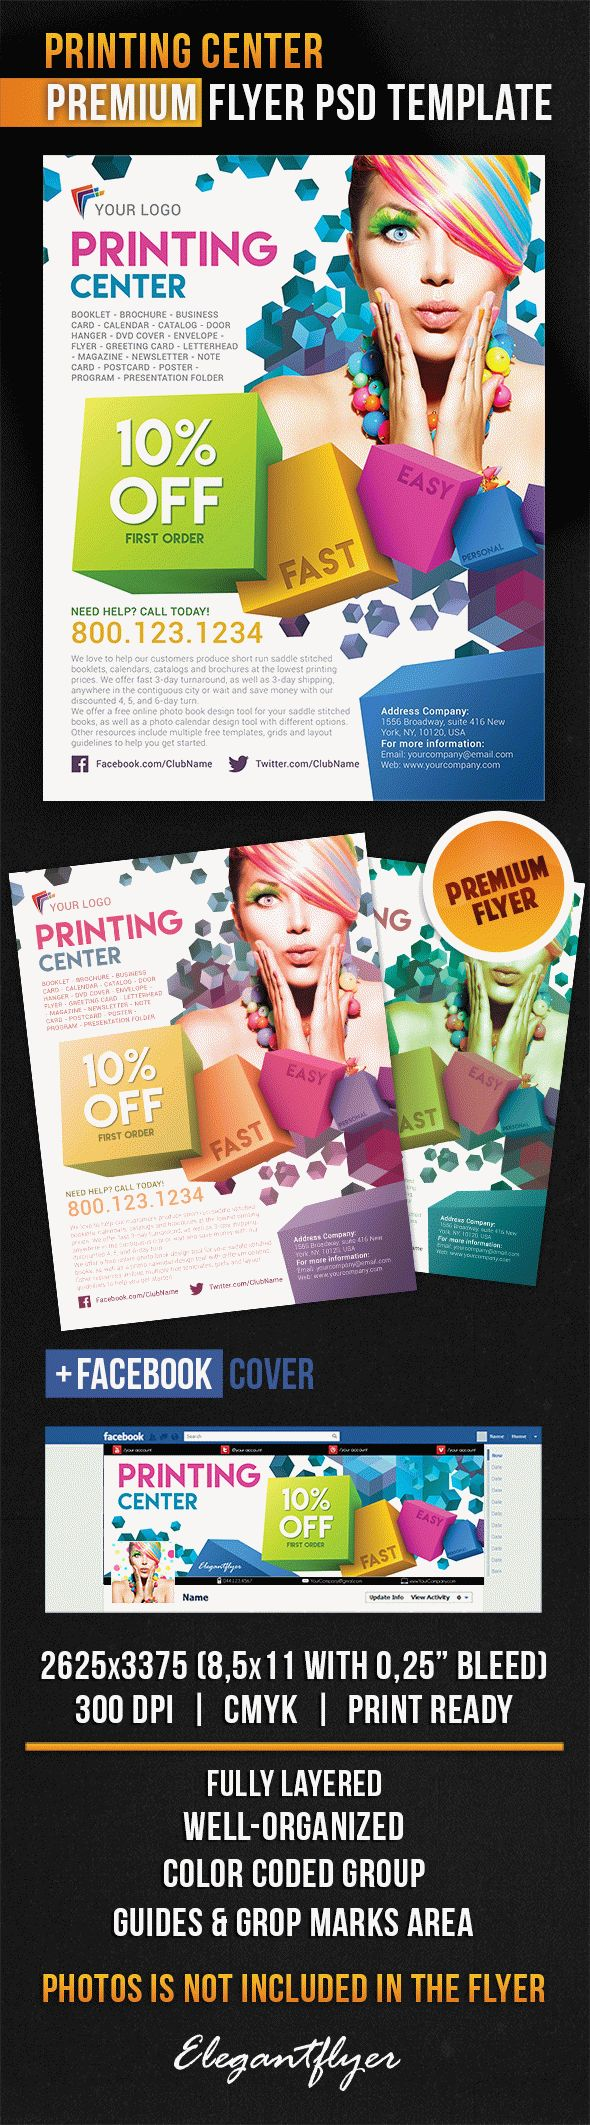 Printing Center – Flyer PSD Template + Facebook Cover